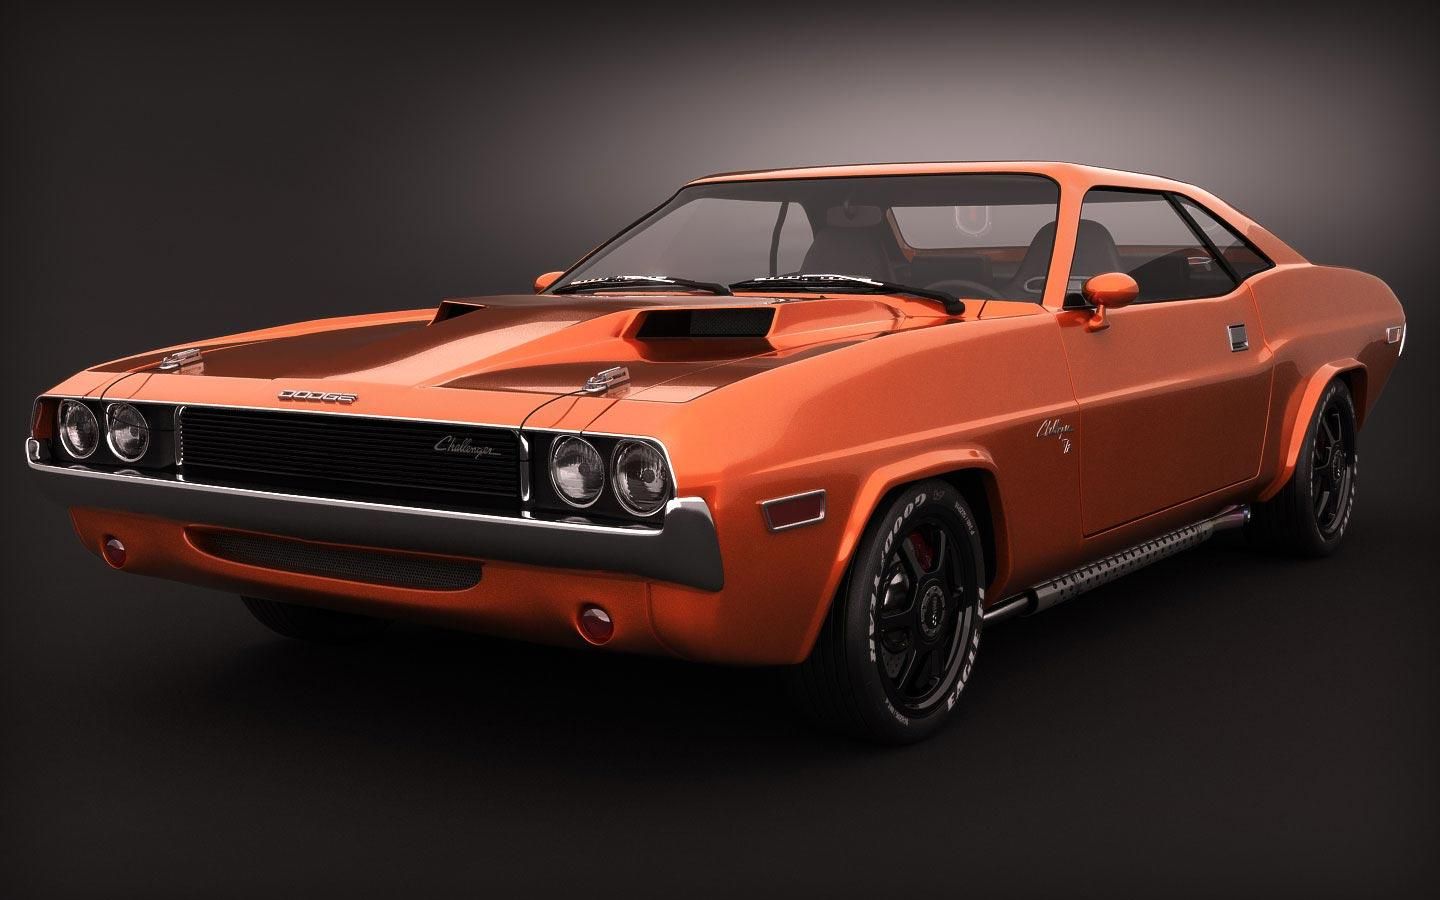 Old School Muscle Cars Wallpapers Wallpaper Cave - Old muscle cars